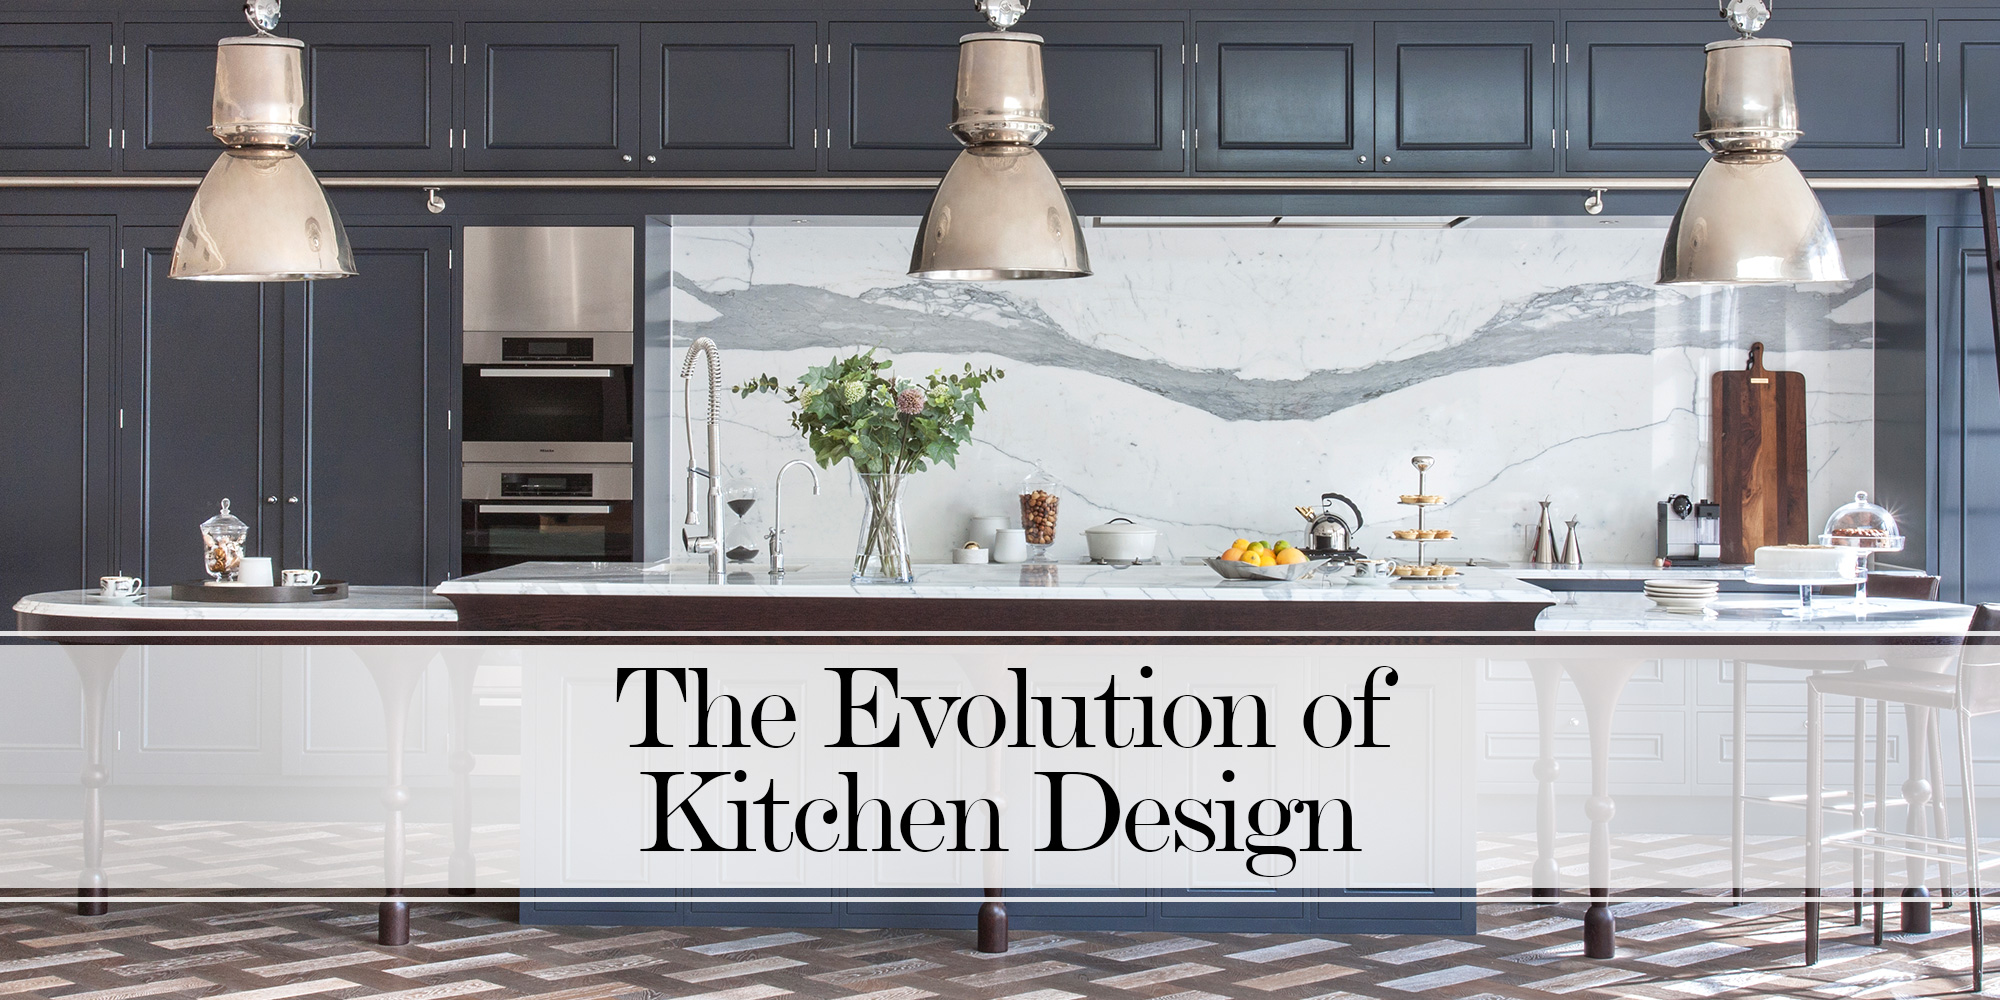 Superior Whatu0027s Cooking? The Evolution Of Kitchen Design